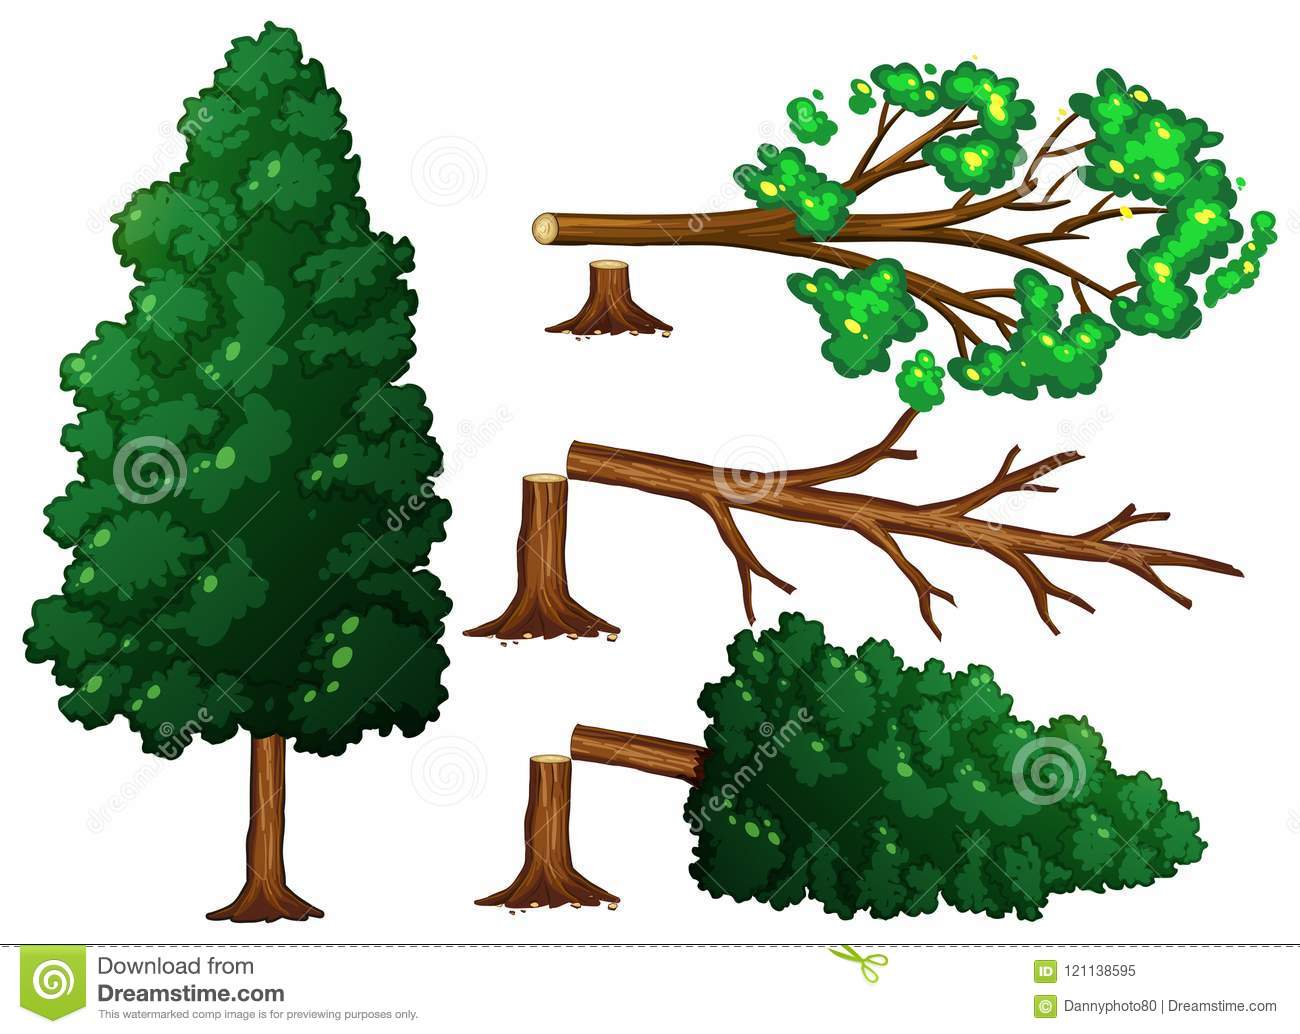 A Set of Tree Being Cut